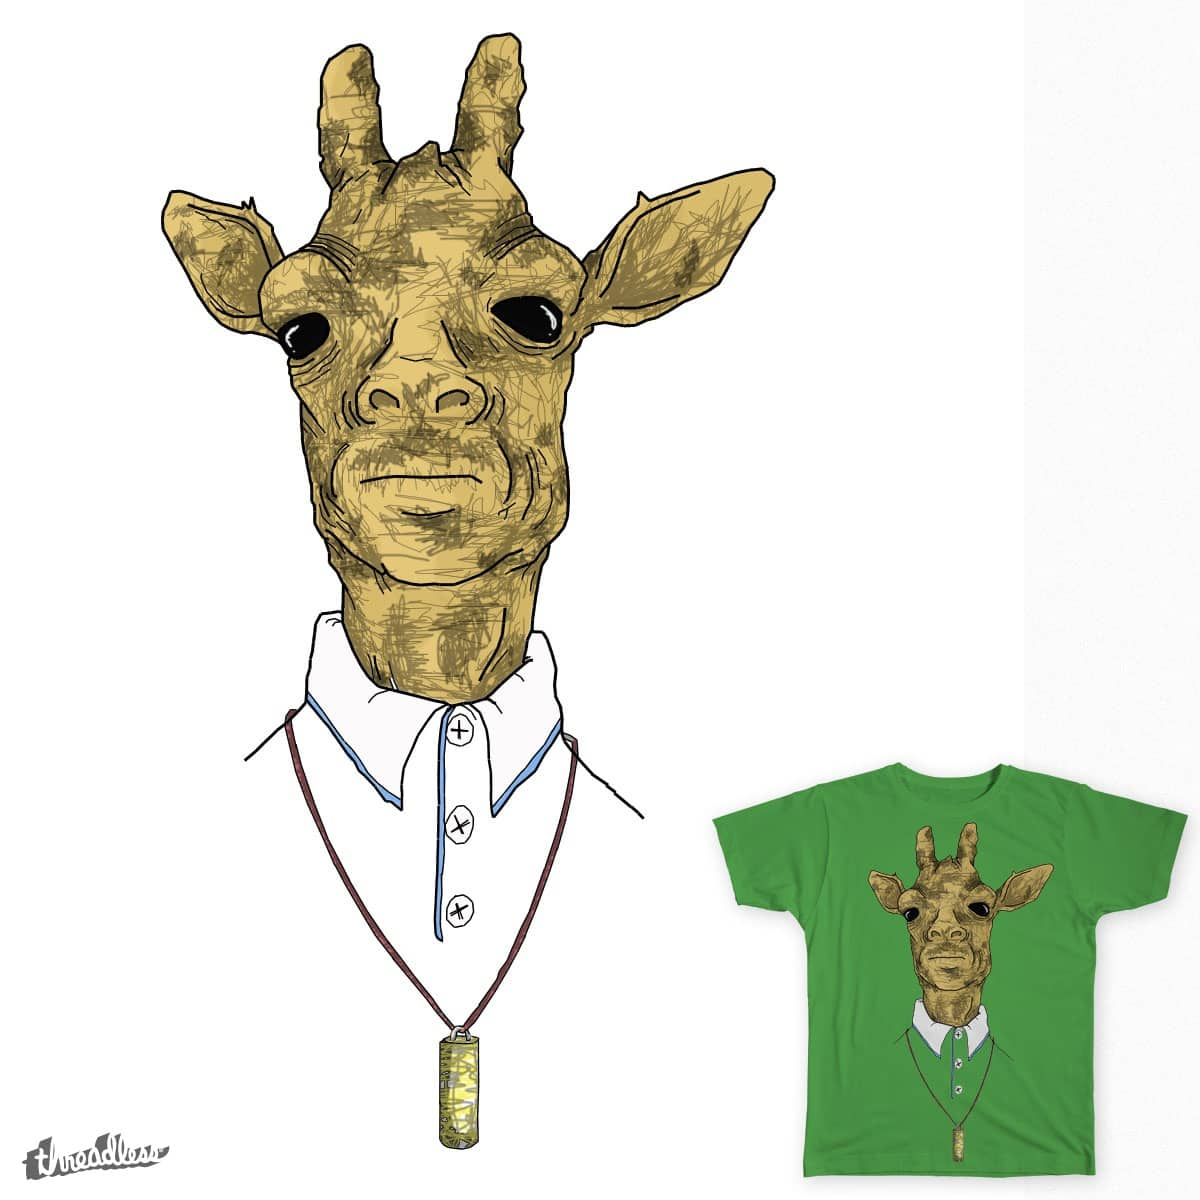 giraffe bro by the corner culture kid on Threadless